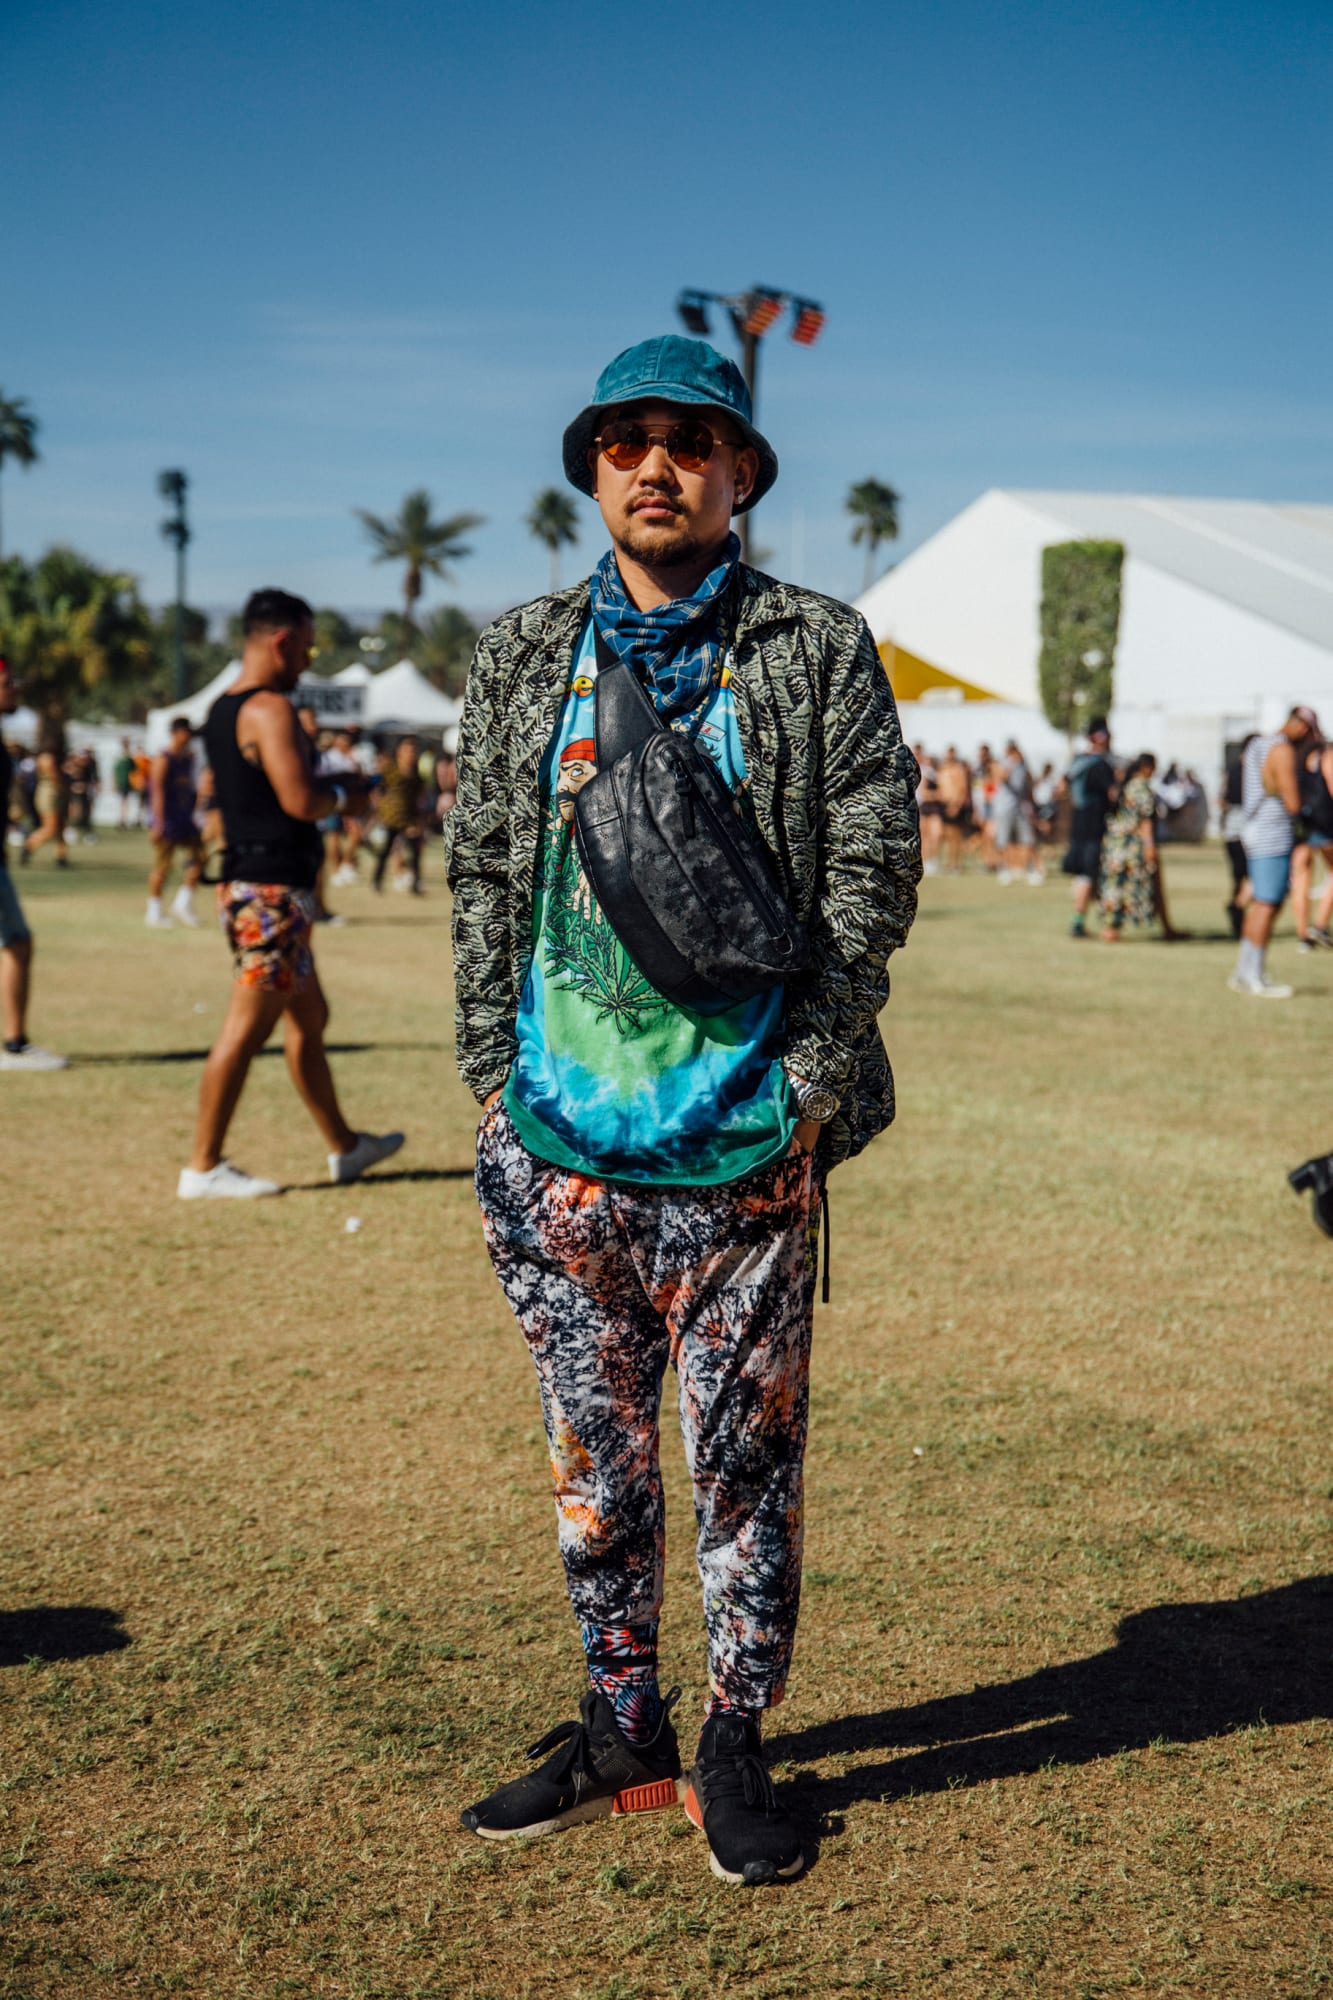 coachella-festival-fashion-street-style-weekend-1-2019-8.jpg